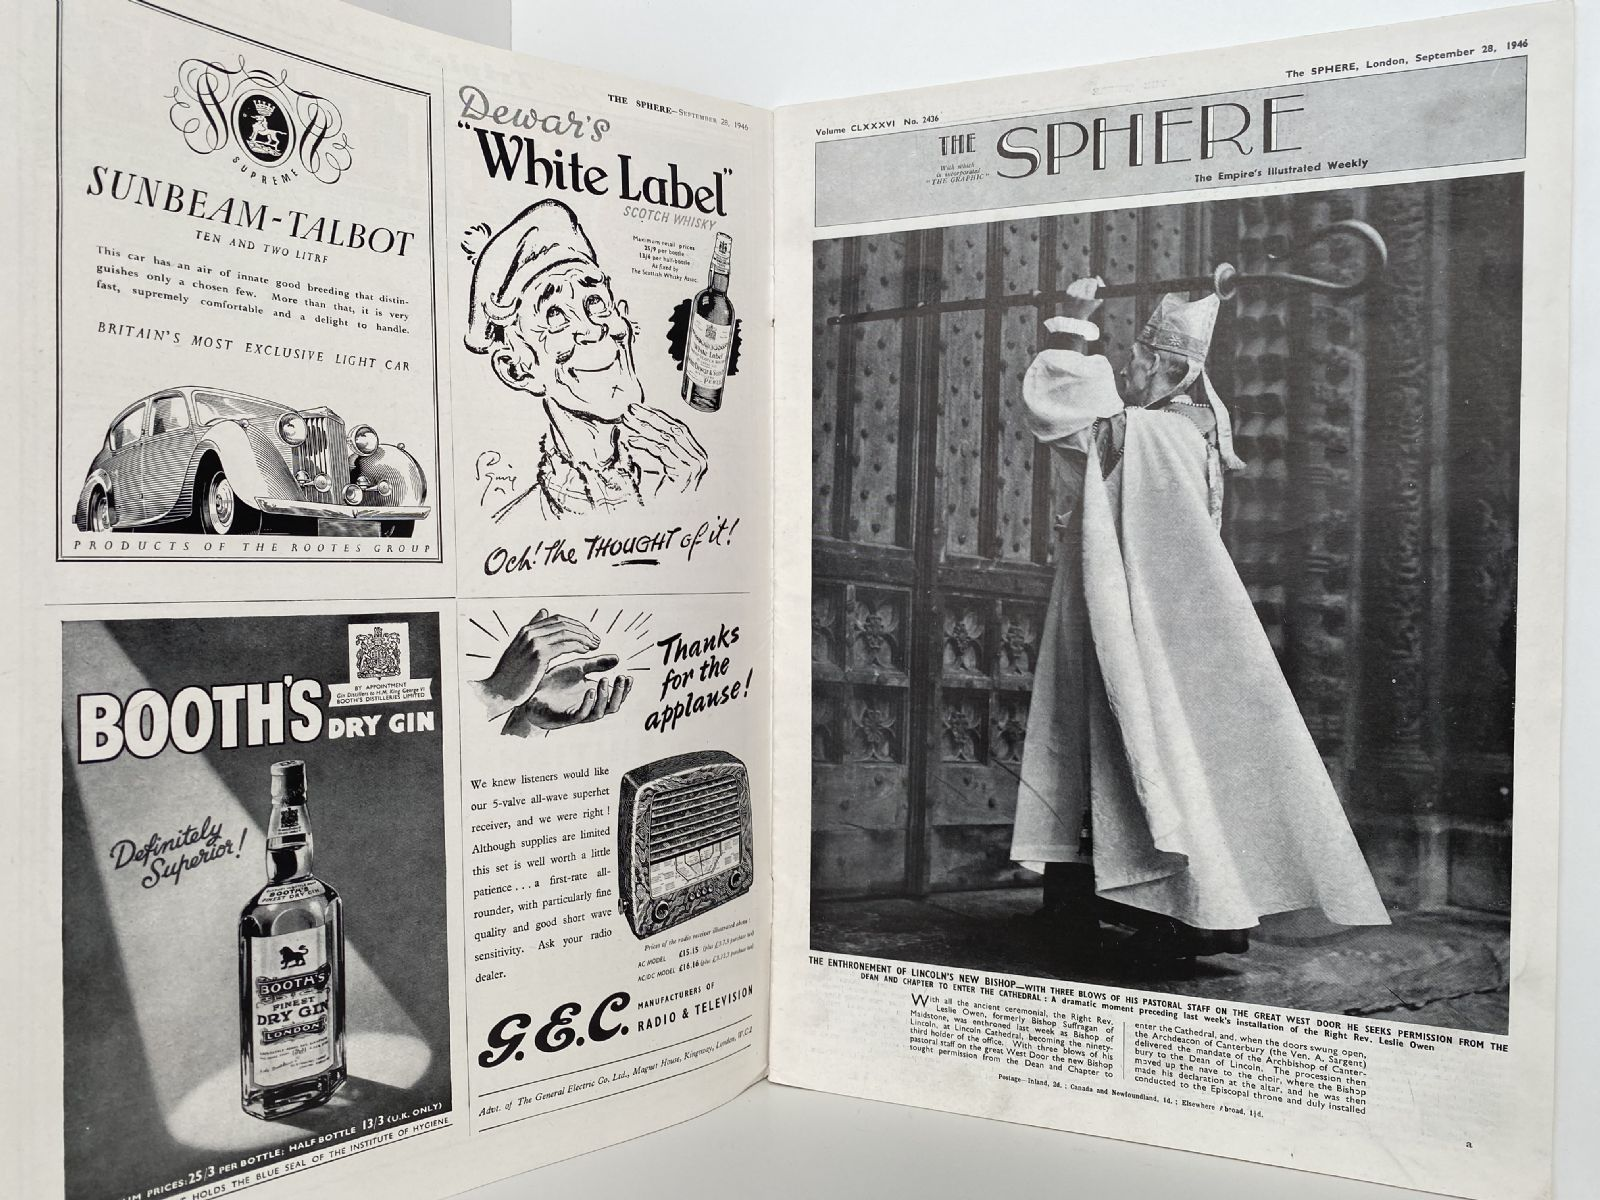 THE SPHERE The Empire's Illustrated Weekly. September 28 1946. No. 2436